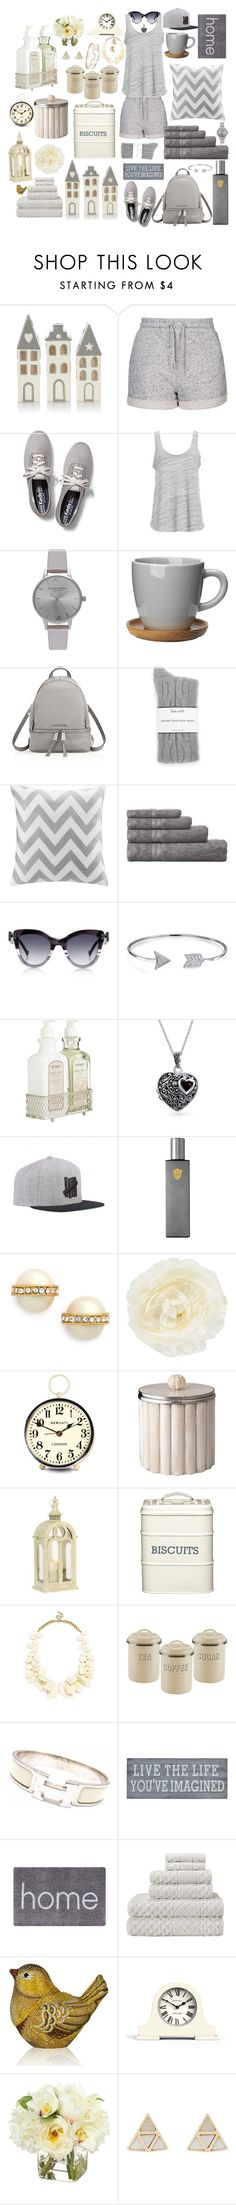 """""""Untitled #162"""" by julie-andrews ❤ liked on Polyvore featuring interior, interiors, interior design, home, home decor, interior decorating, Topshop, Keds, Project Social T and Olivia Burton"""